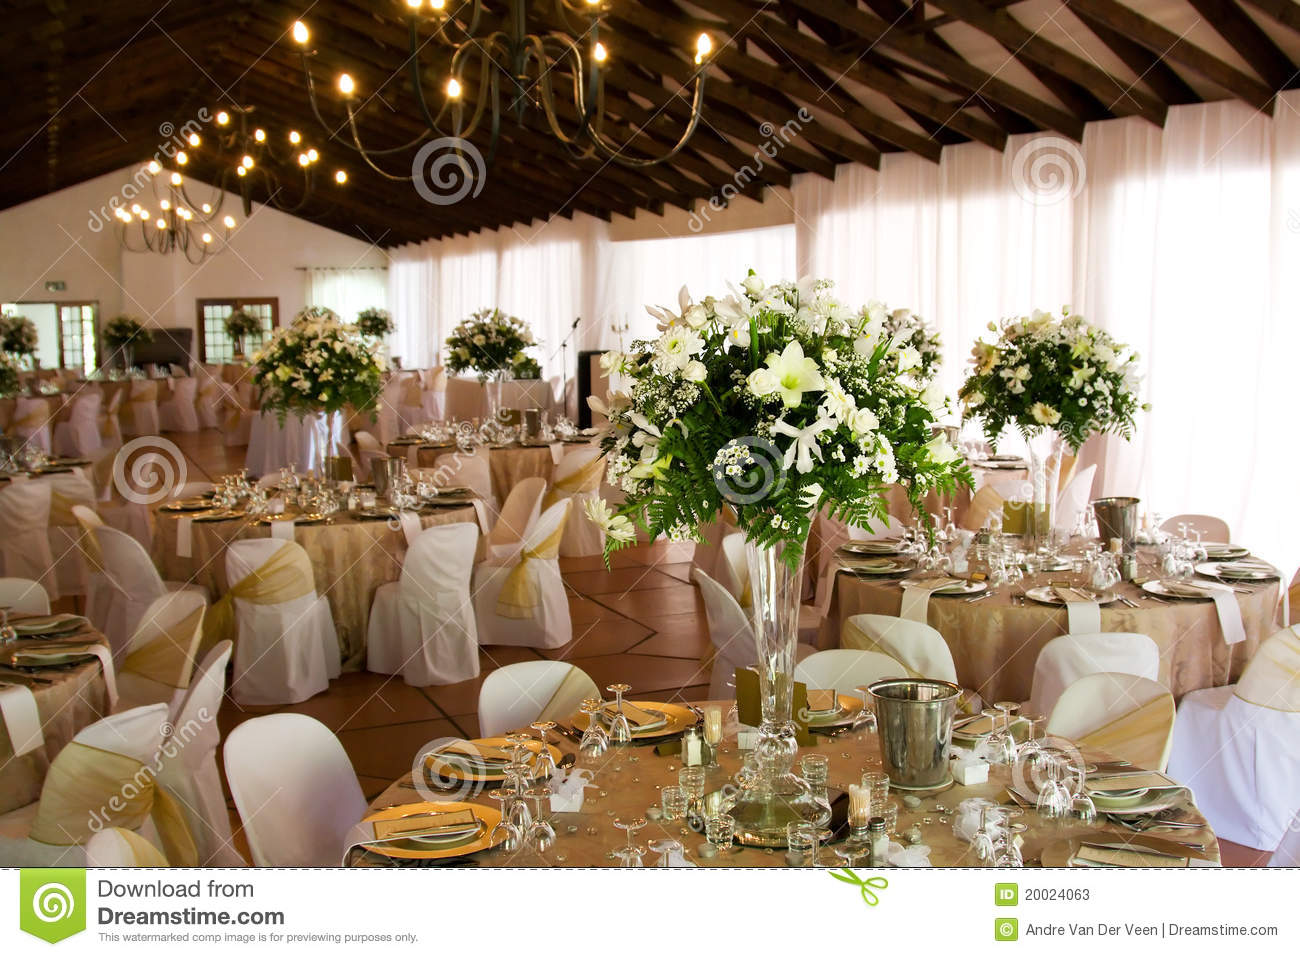 Reception Hall Decorations. reception venue with decor Indoors Wedding Reception Venue With Decor Stock  Photos Image Romantic Decoration